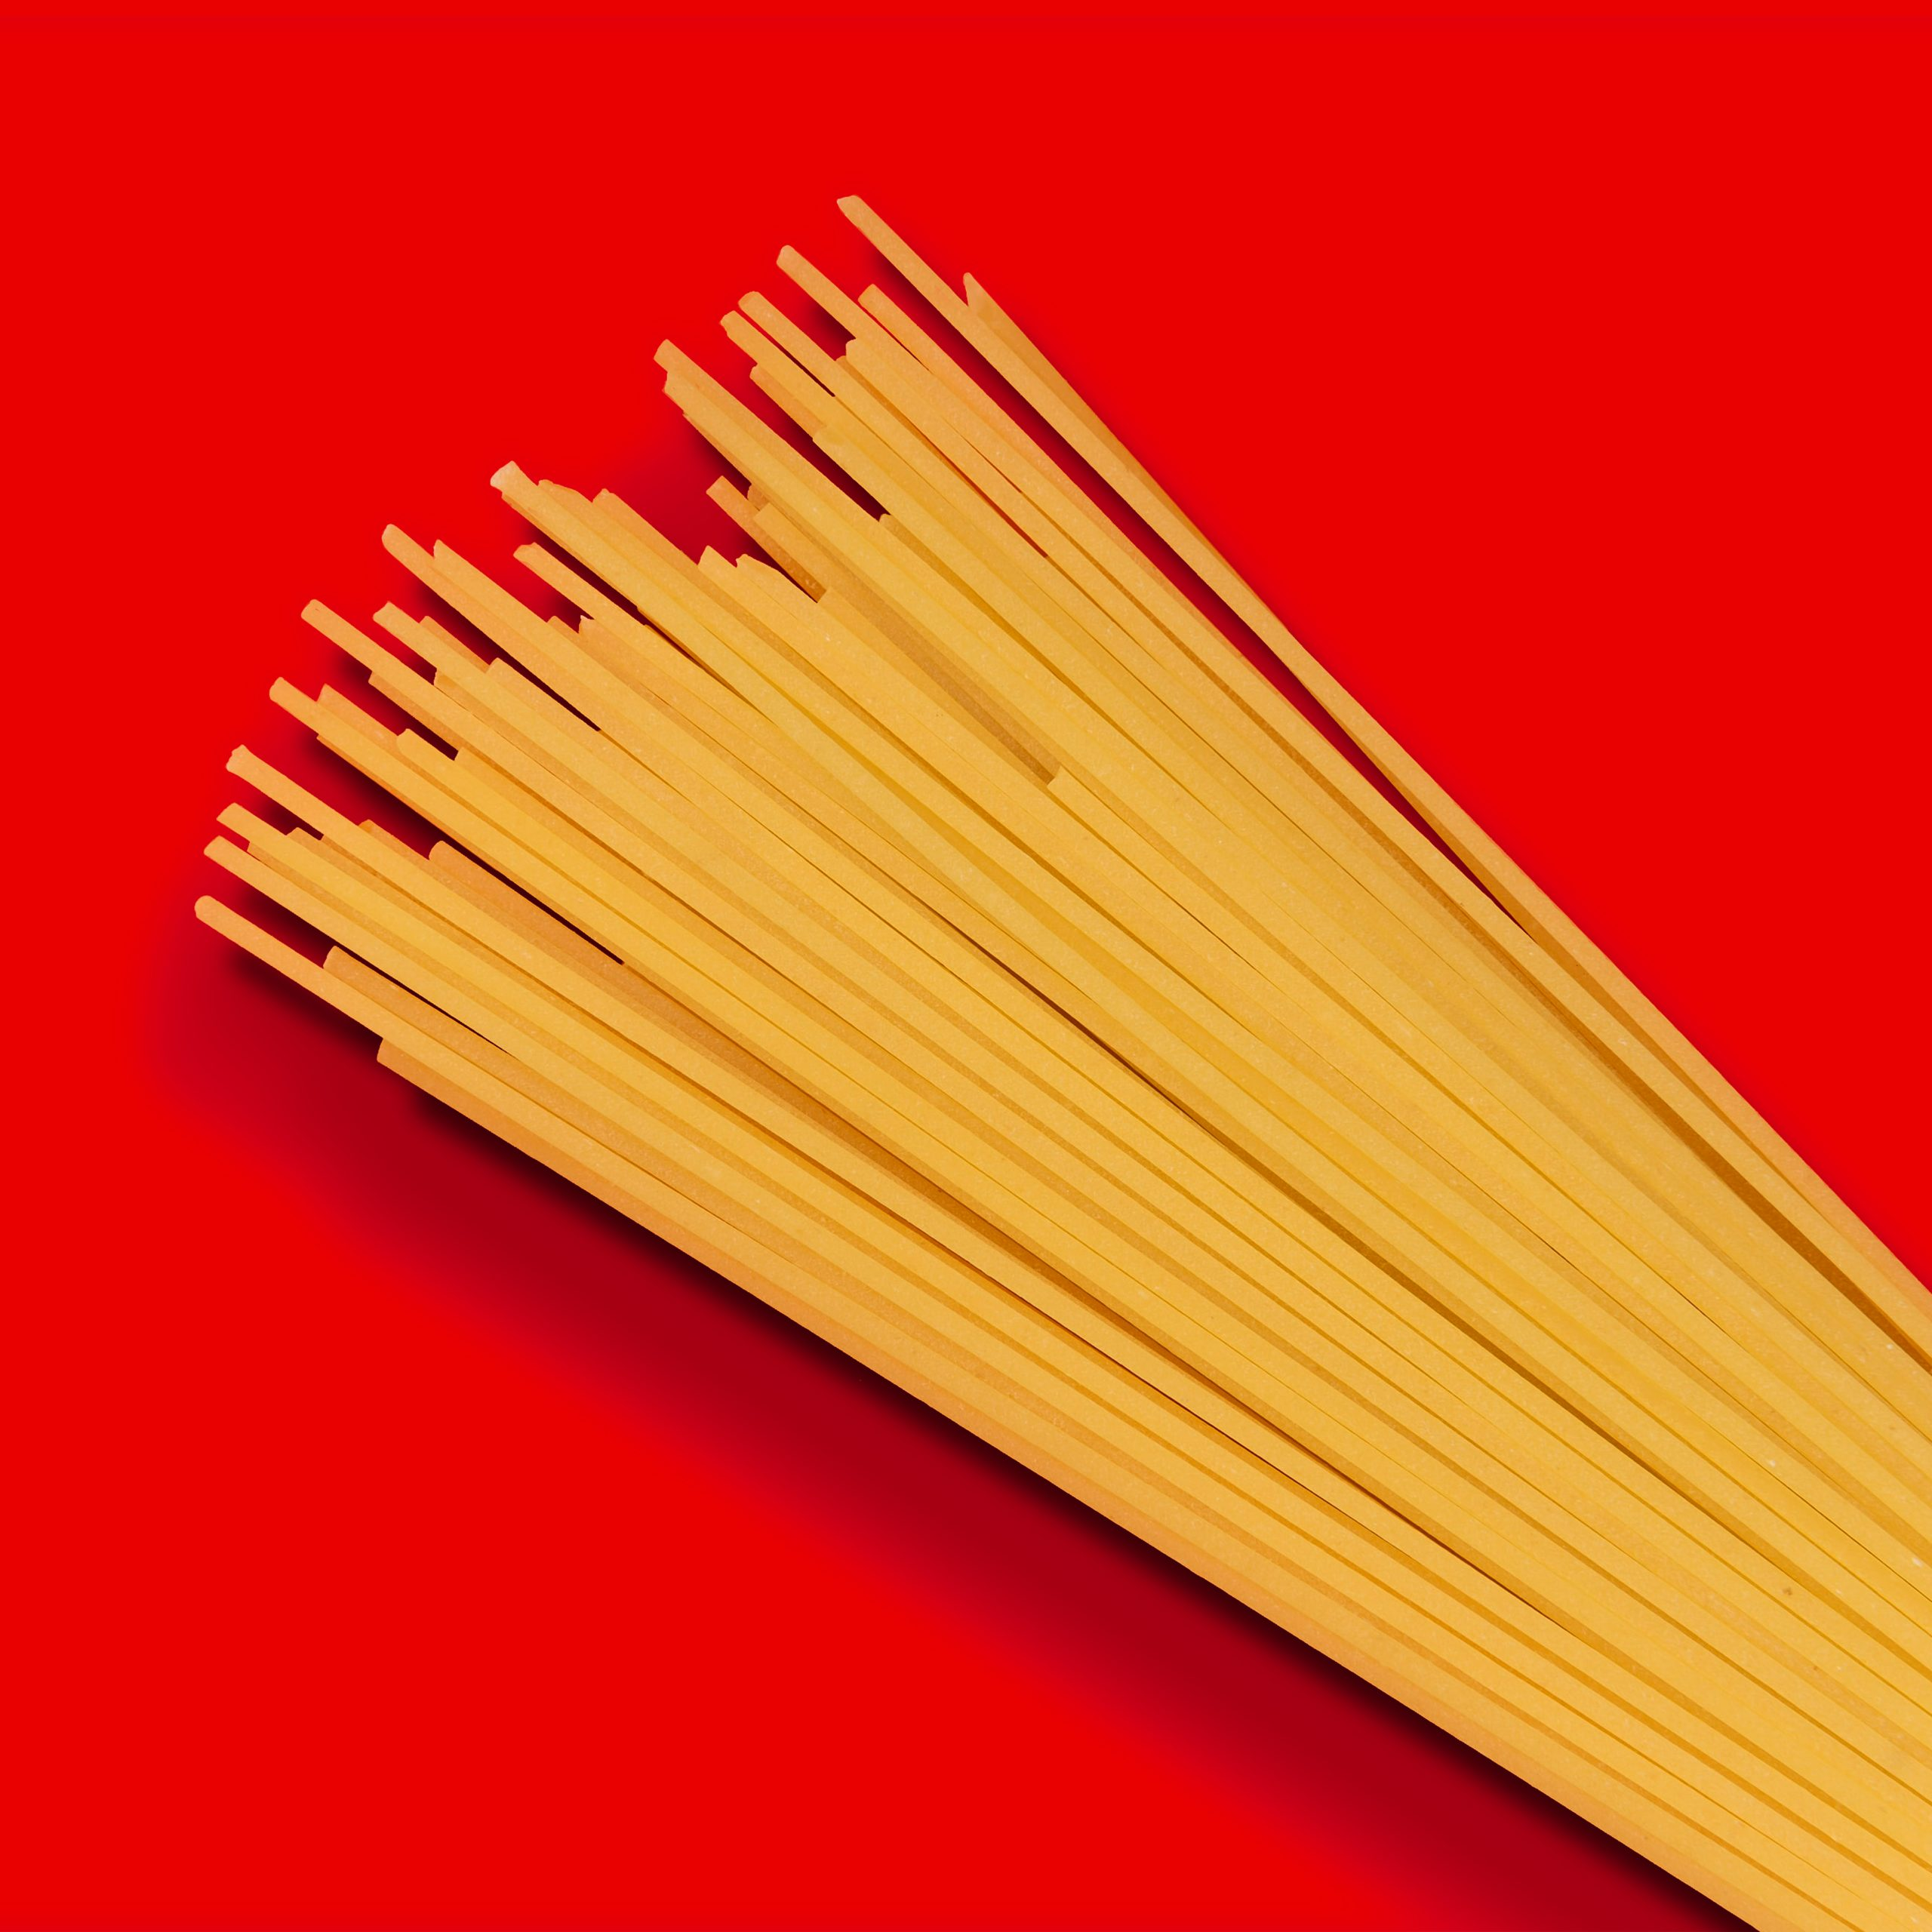 Dry pasta over red background